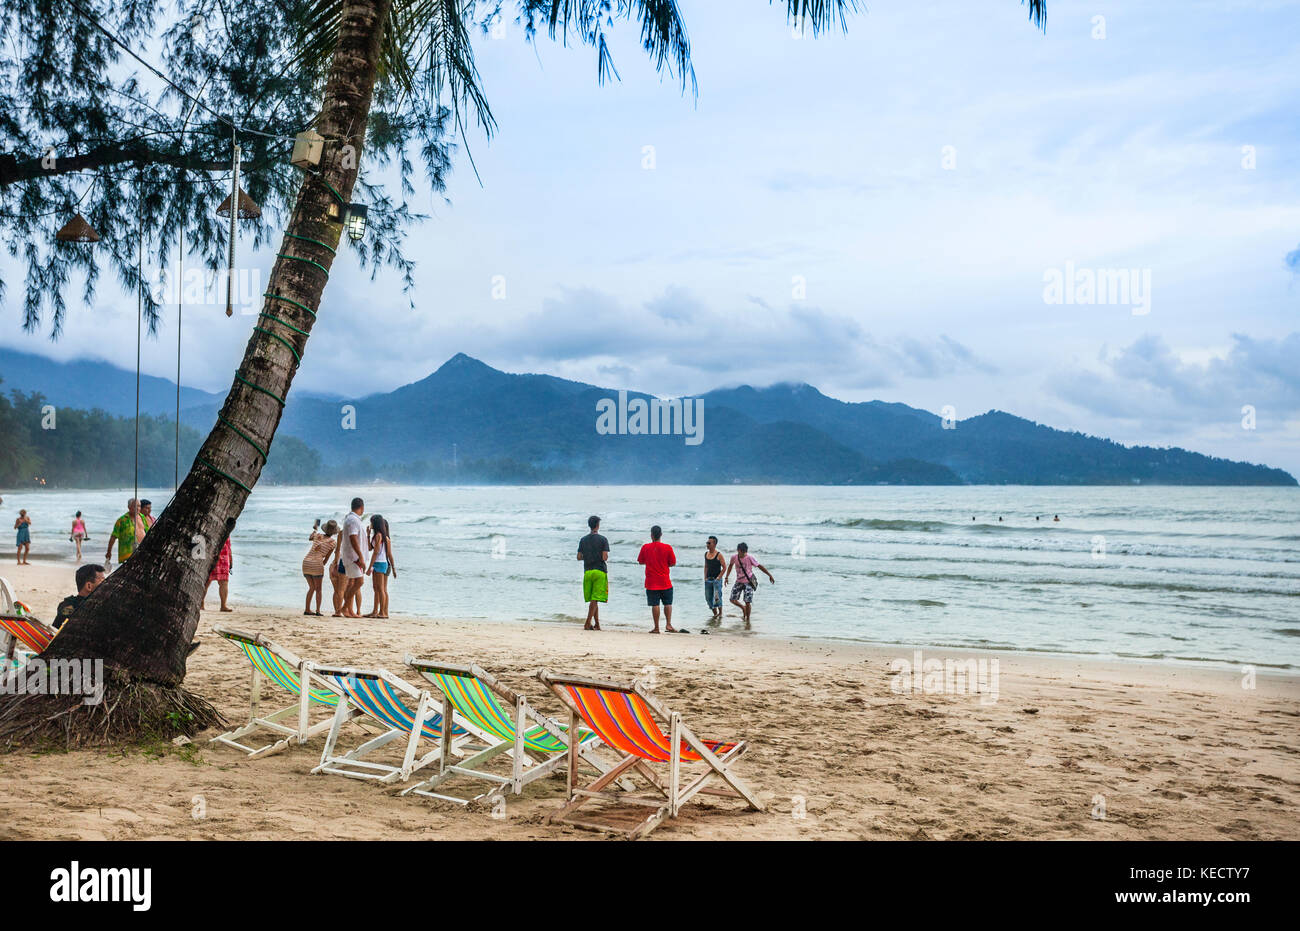 Thailand, Trat Province, Koh Chang Island in the Gulf of Thailand, West Coast, holidaymakers at Ao Klong Phrao Beach - Stock Image